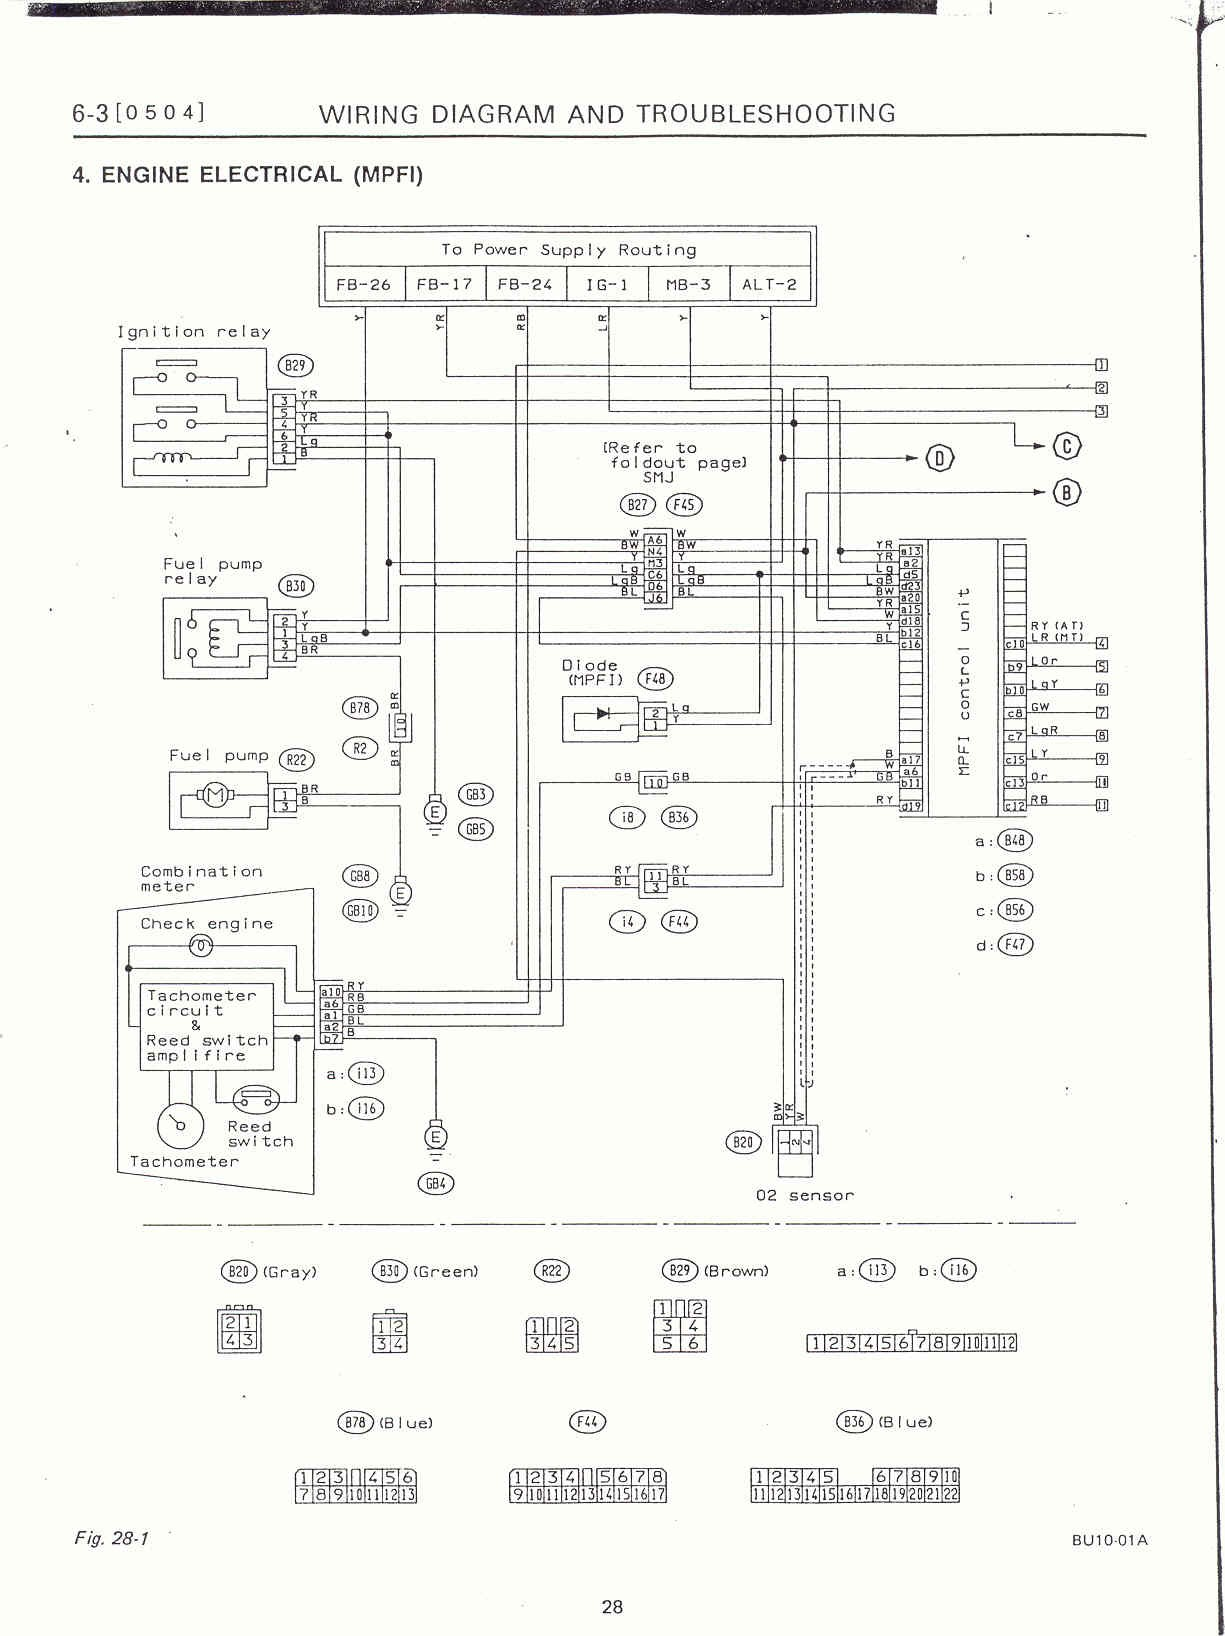 subaru 2 5l engine schematic electronic schematics collectionssubaru 2 2 engine oil diagram wiring diagram librarysubaru 2 2 engine diagram 5 hyn capecoral